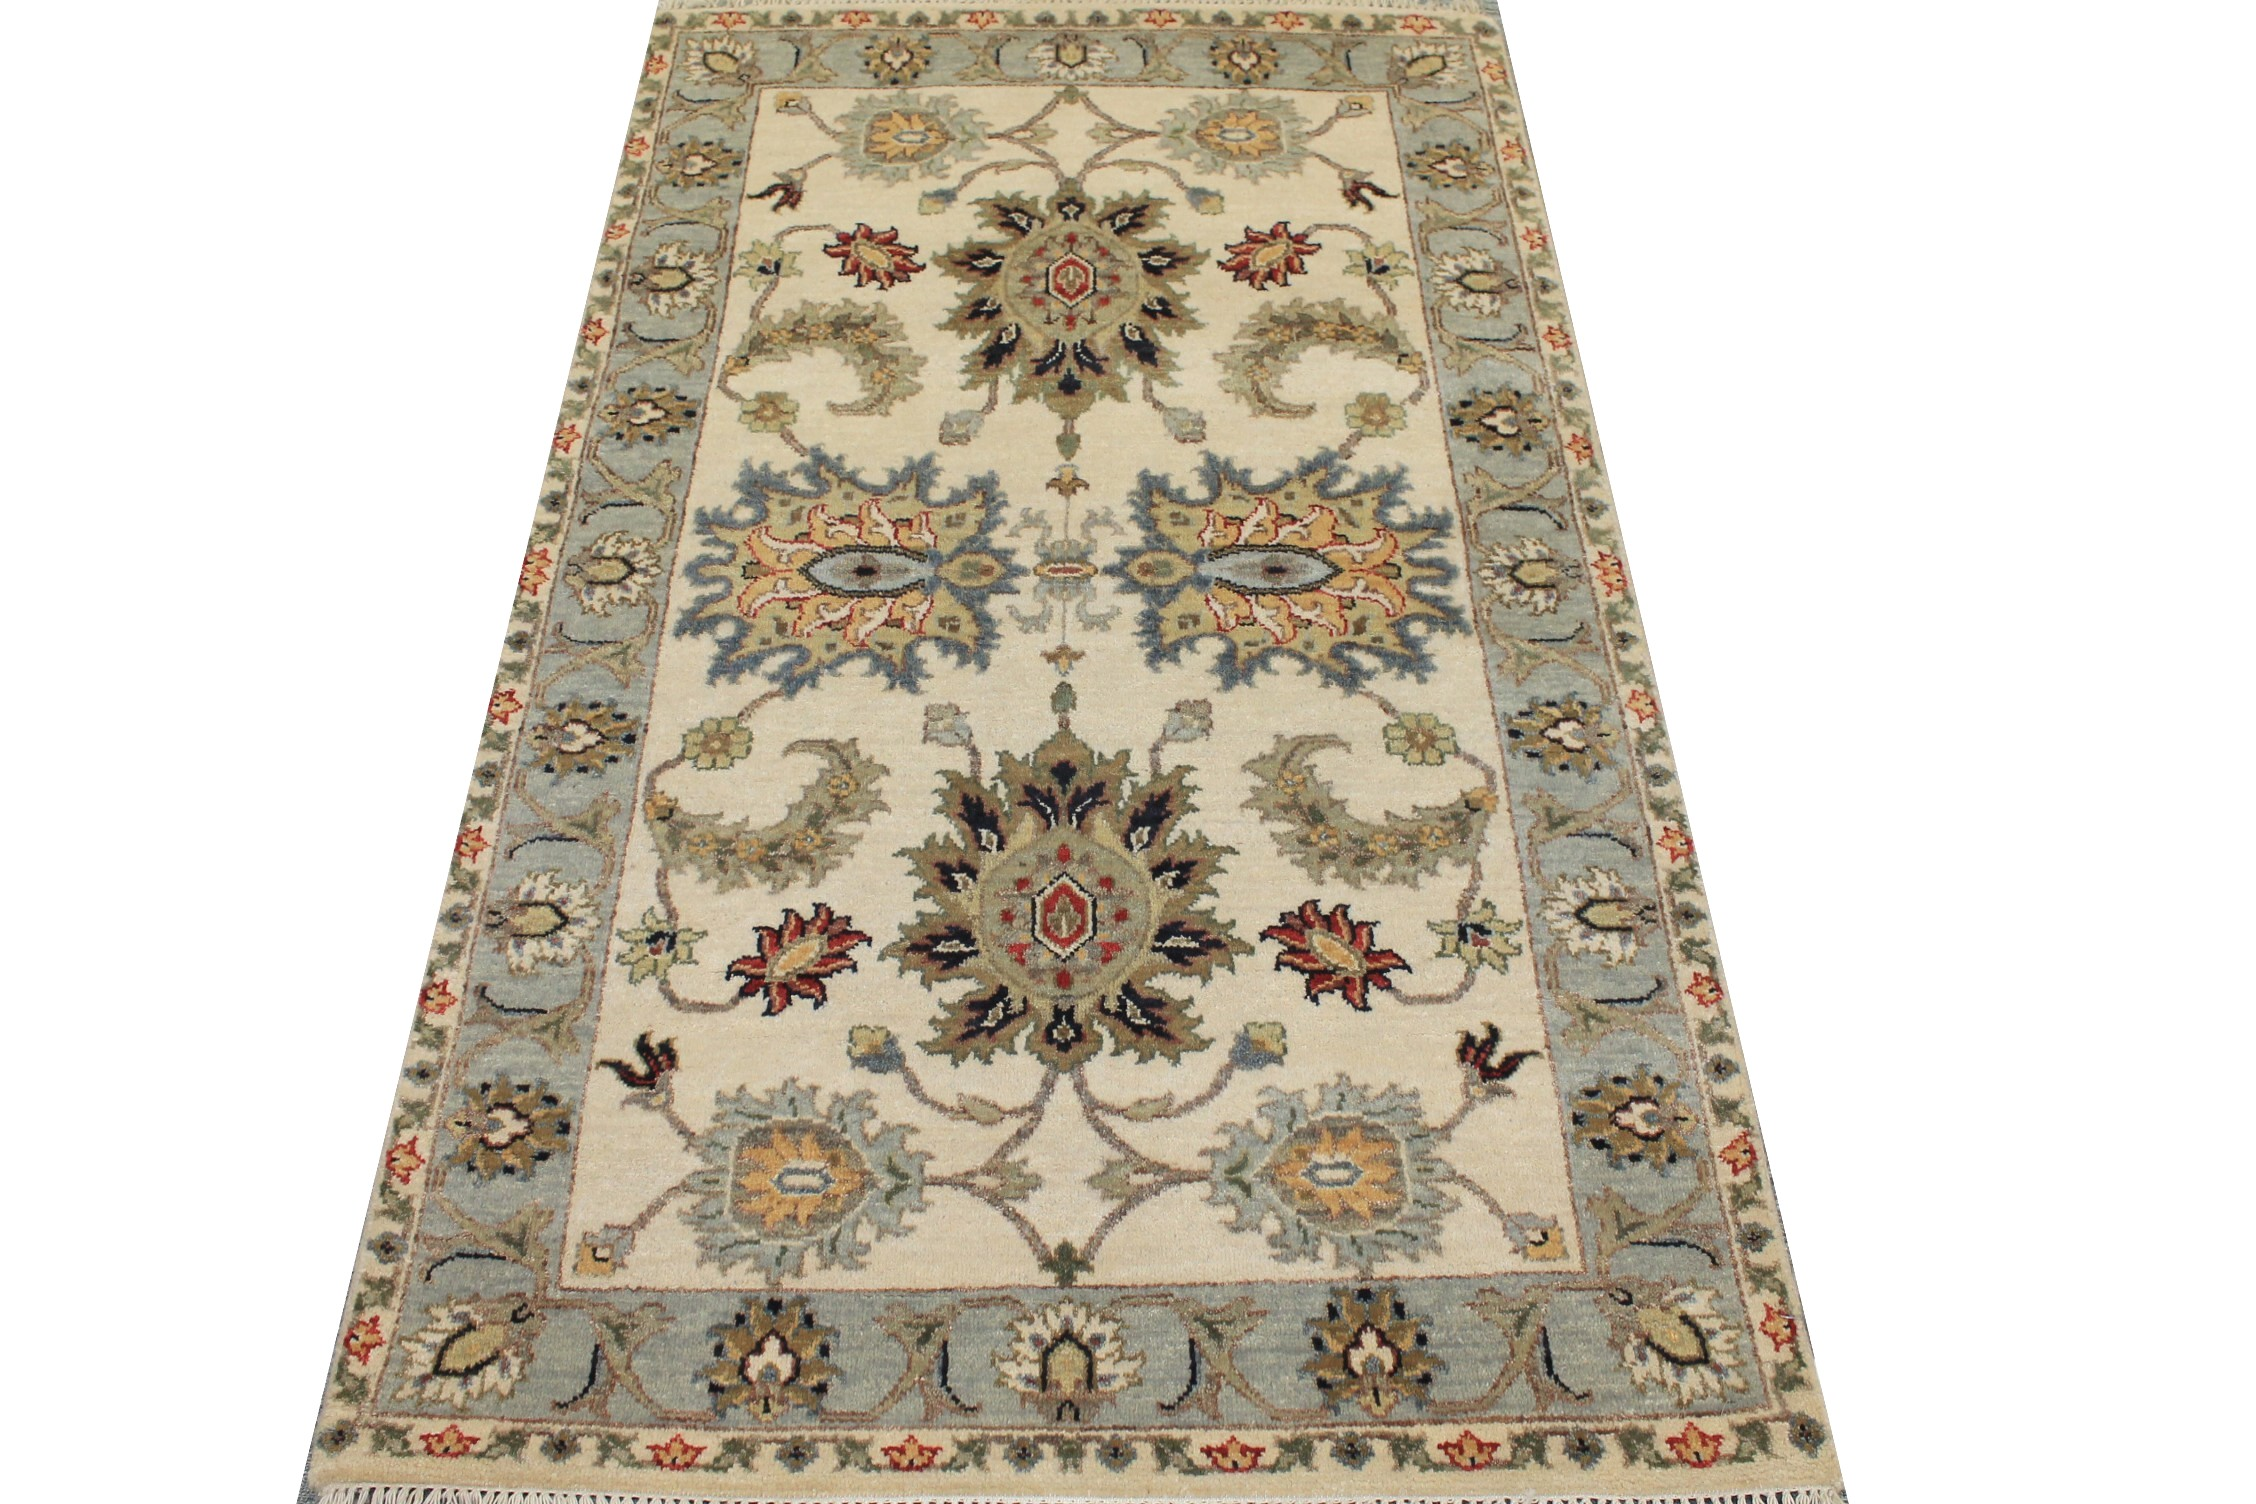 3x5 Oriental Hand Knotted Wool Area Rug - MR025493